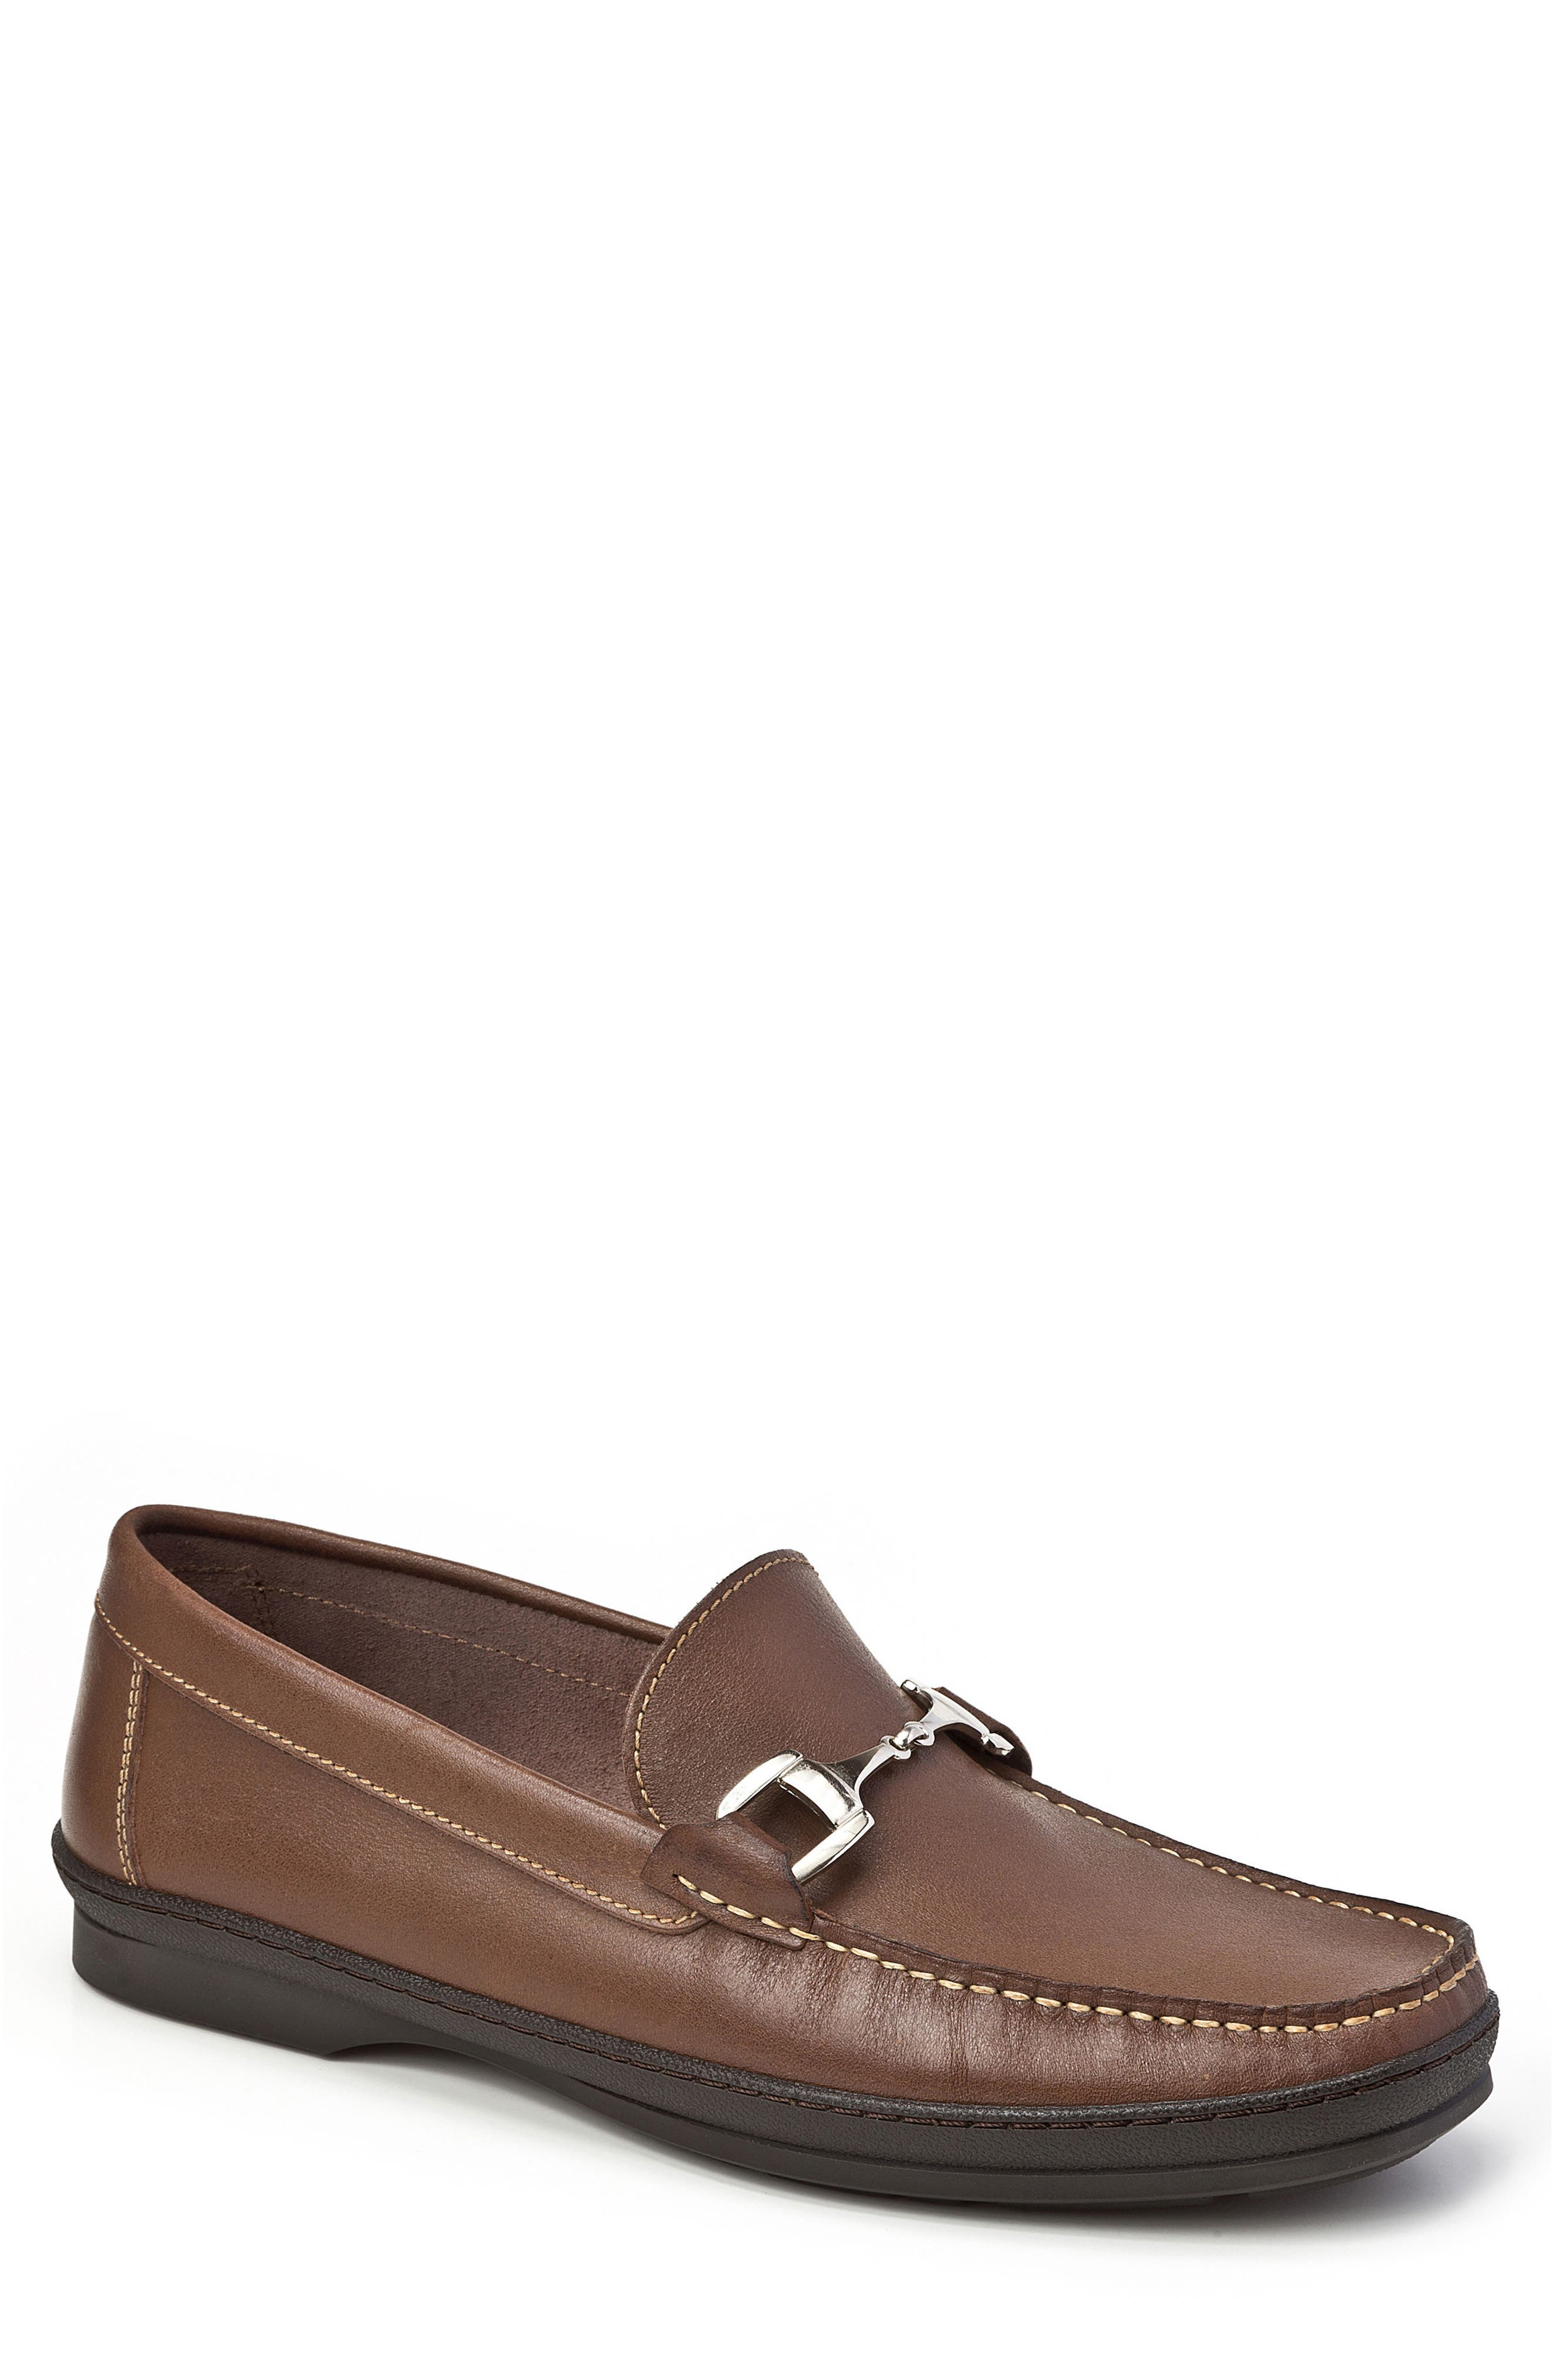 Navarro Bit Loafer,                             Main thumbnail 1, color,                             Brown Leather